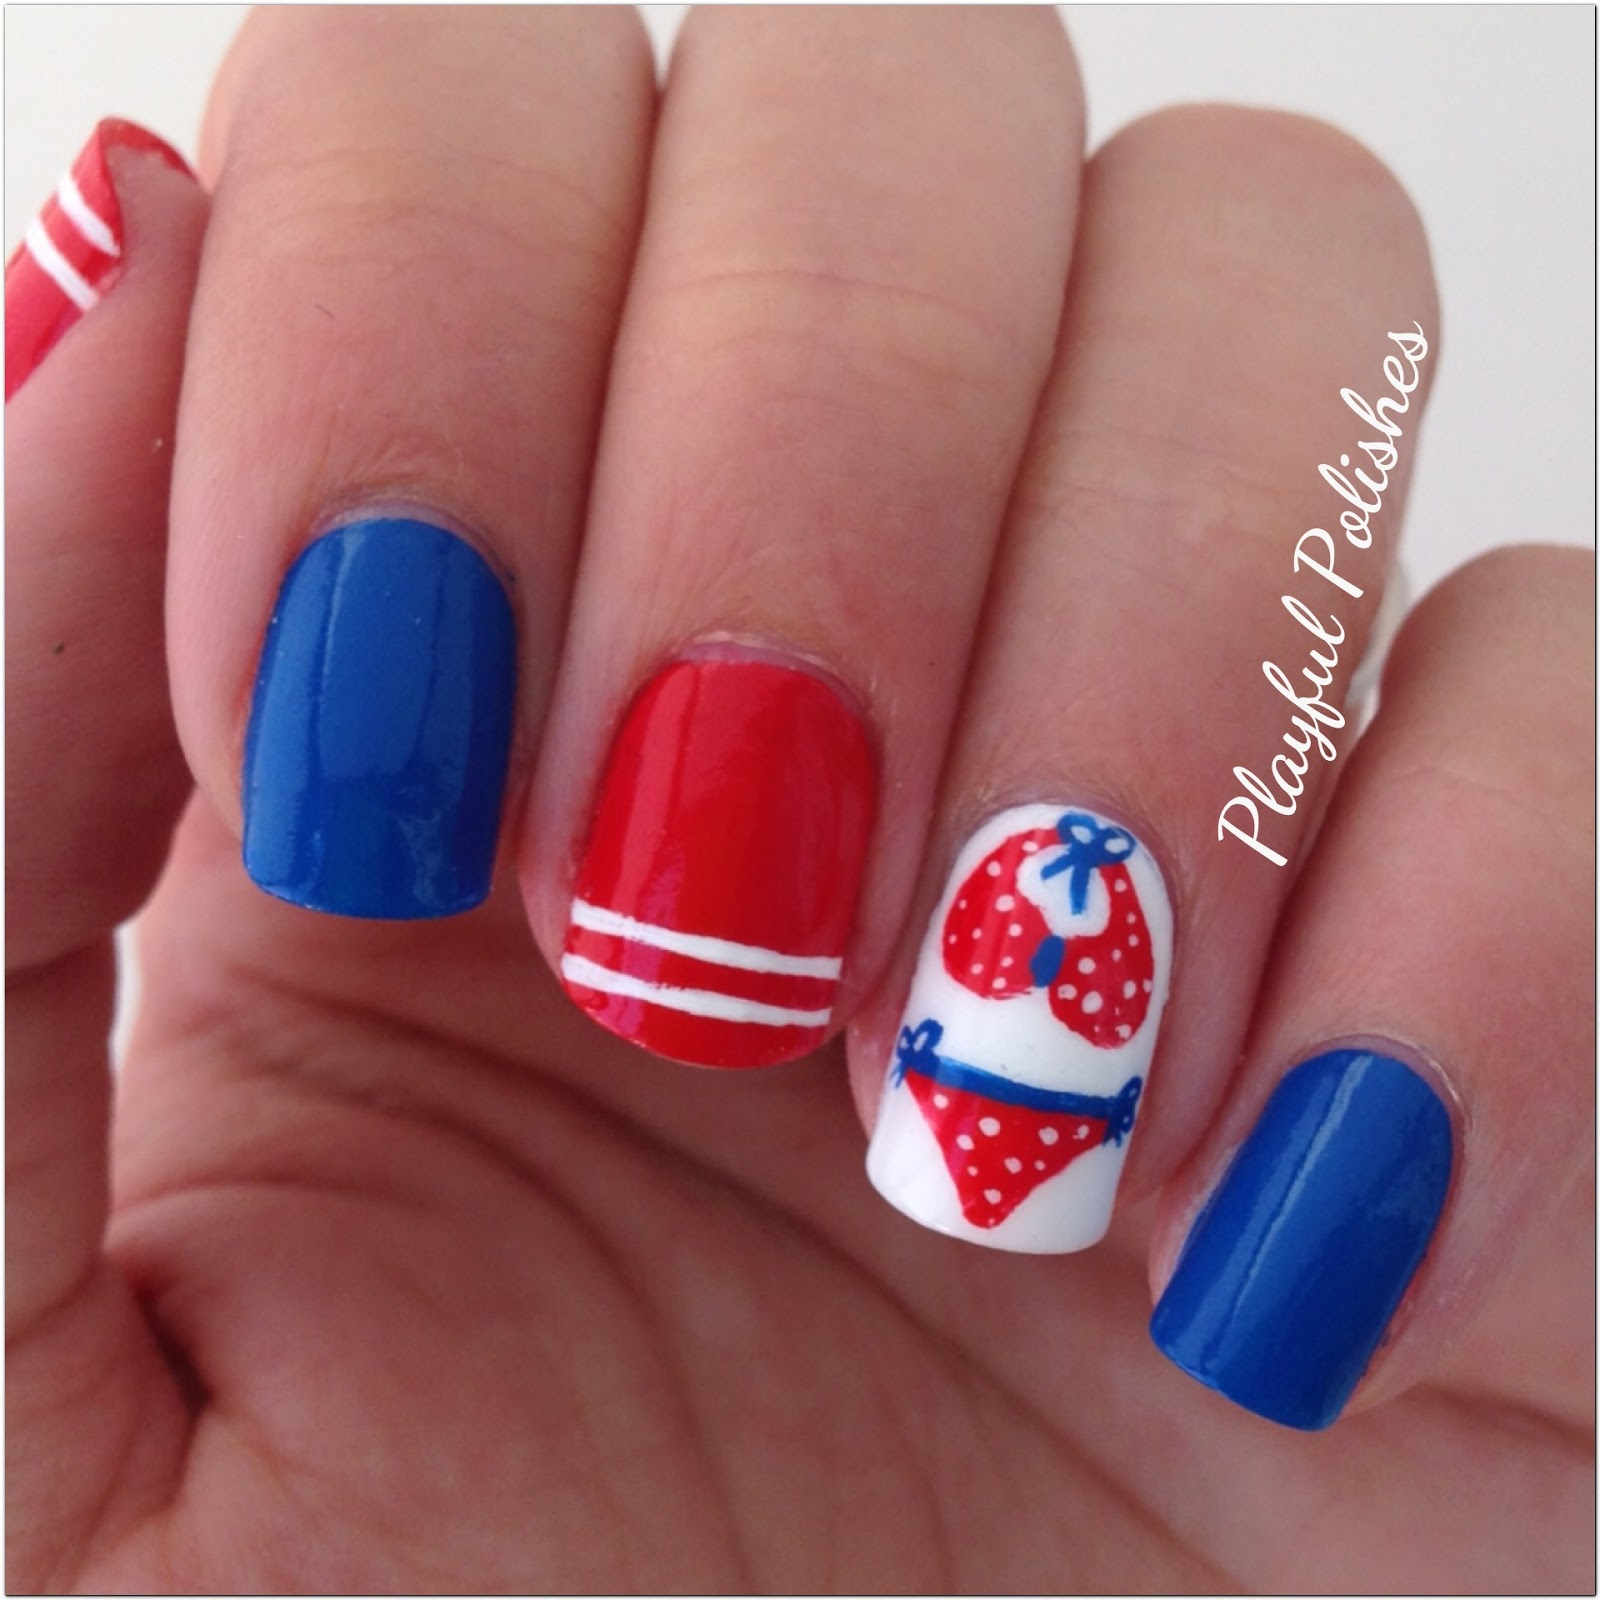 Playful Polishes: 4TH OF JULY NAIL ART